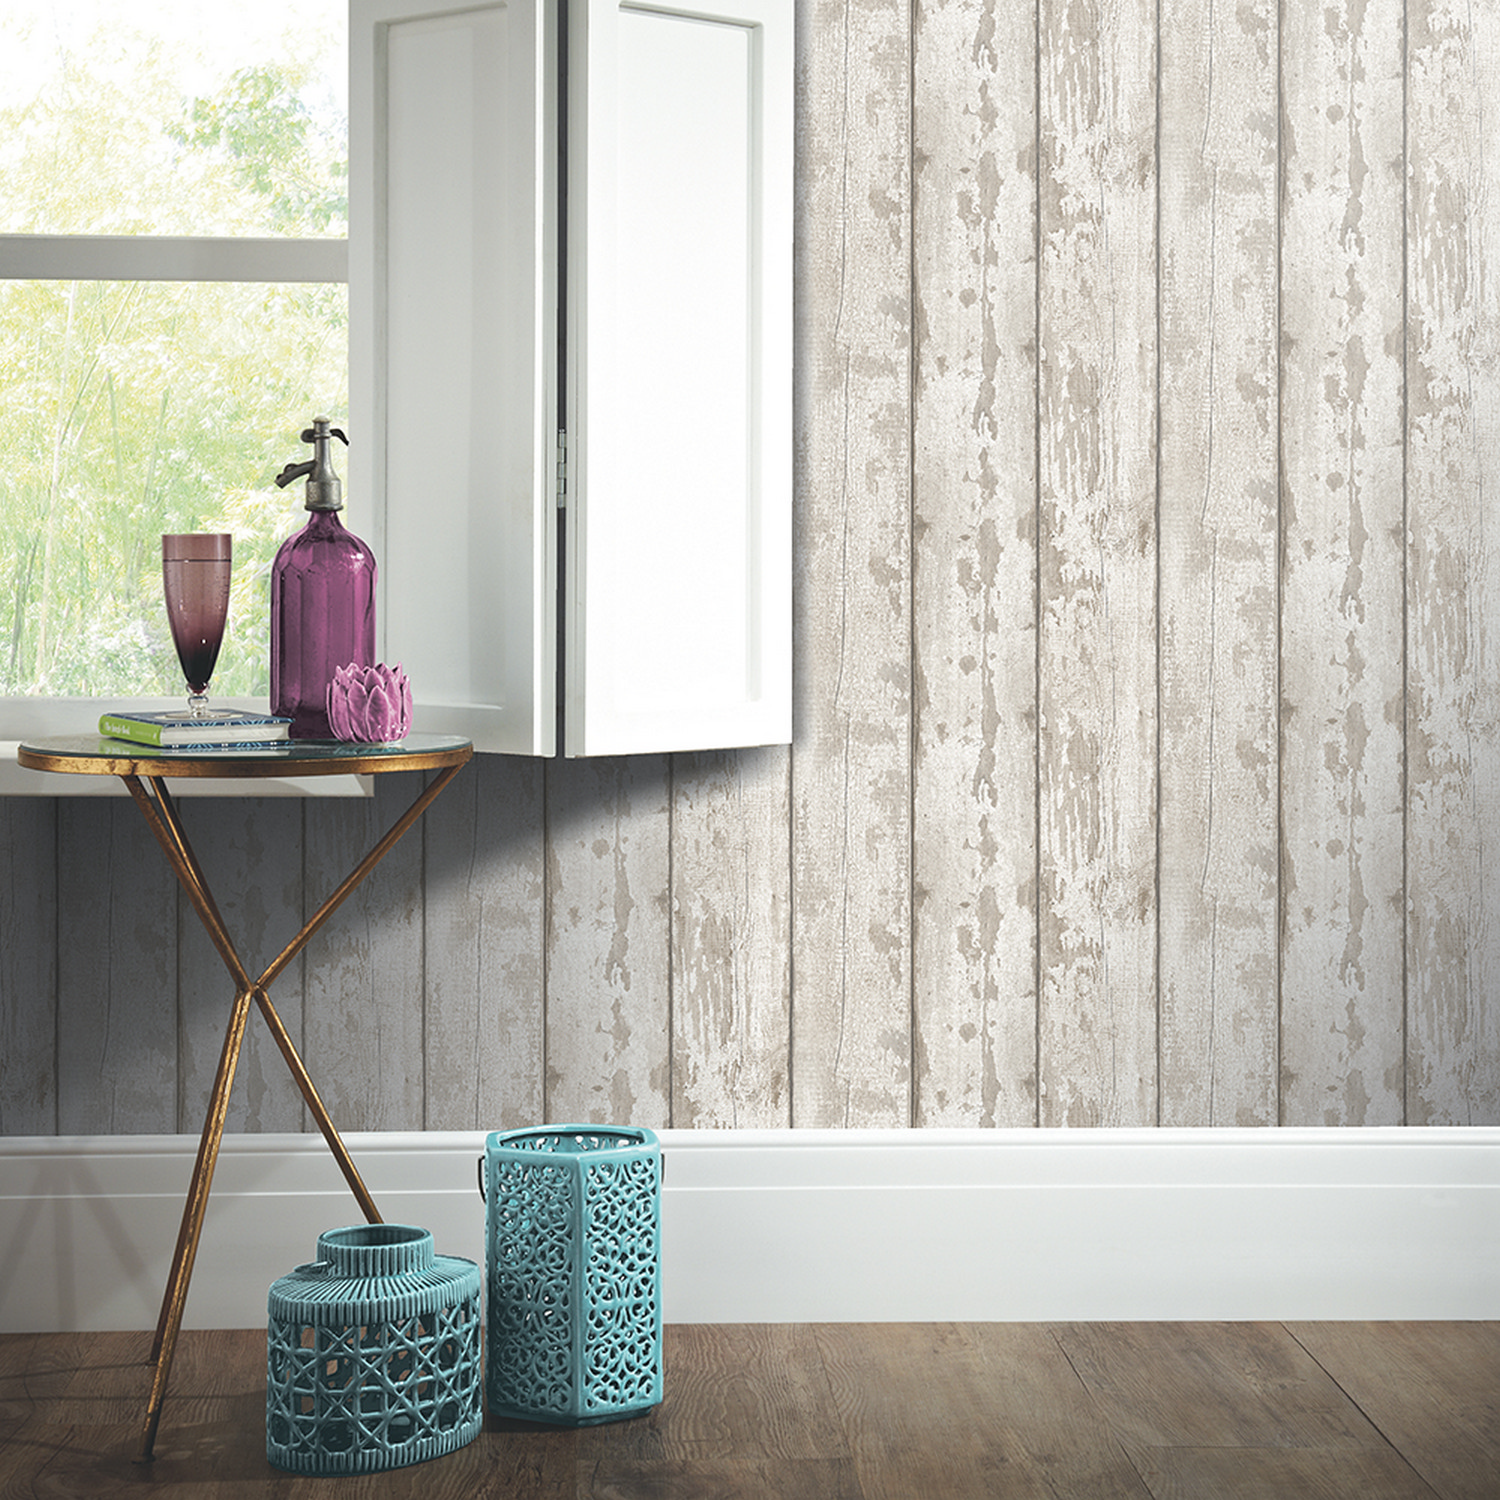 Arthouse Rustic Wood Heart Natural Shabby Chic Feature Wallpaper SAMPLE 669600